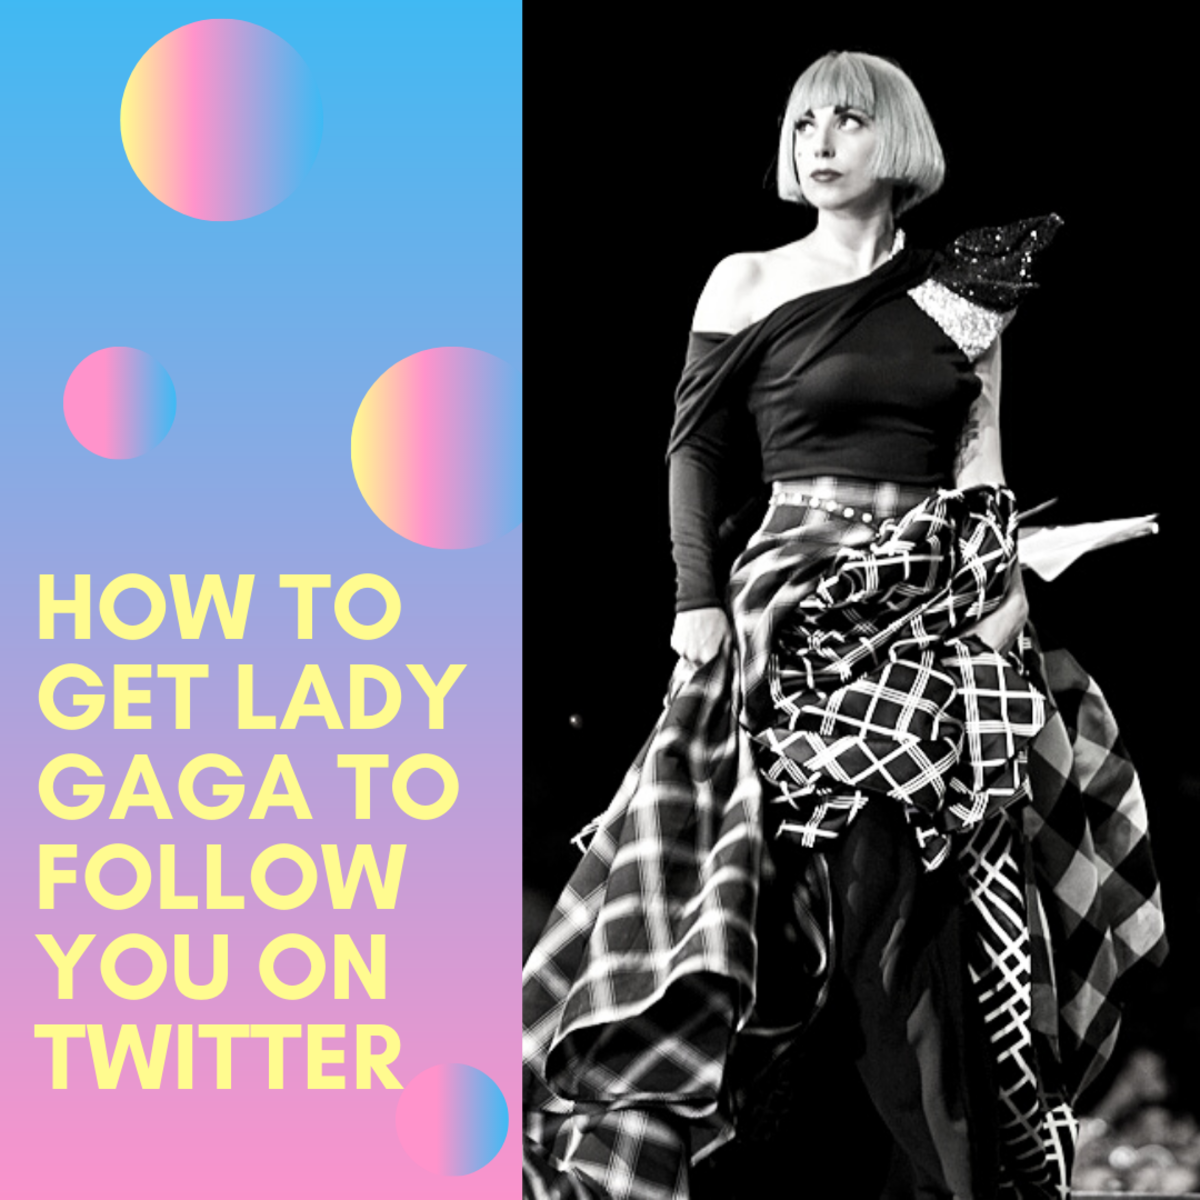 How to Get Lady Gaga to Follow You on Twitter